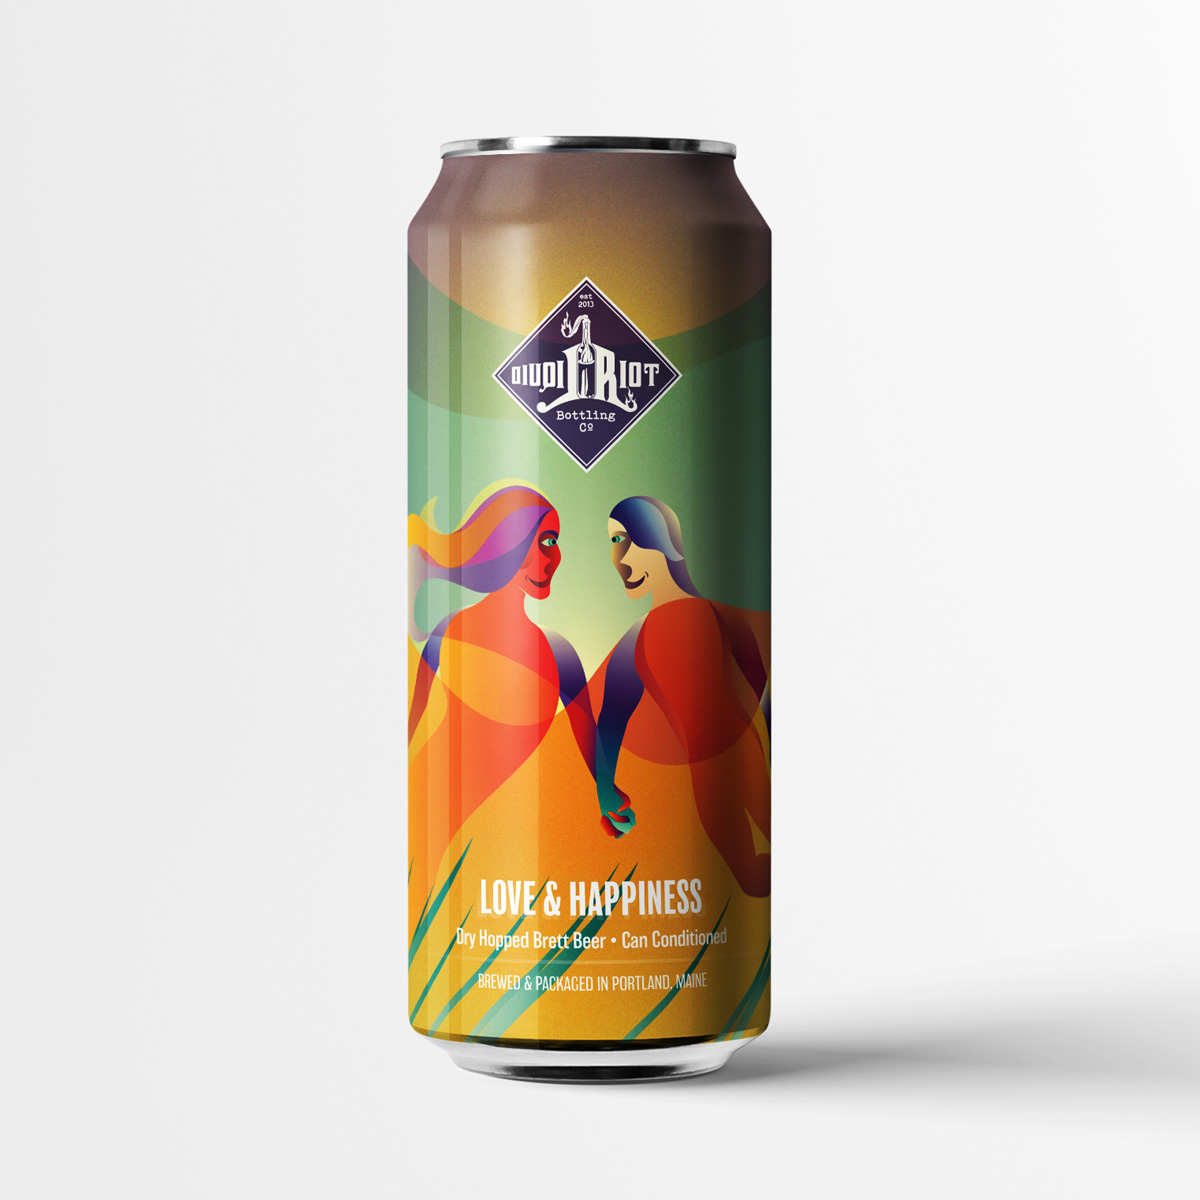 Liquid Riot – Love & Happiness – Dry Hopped Brett Beer